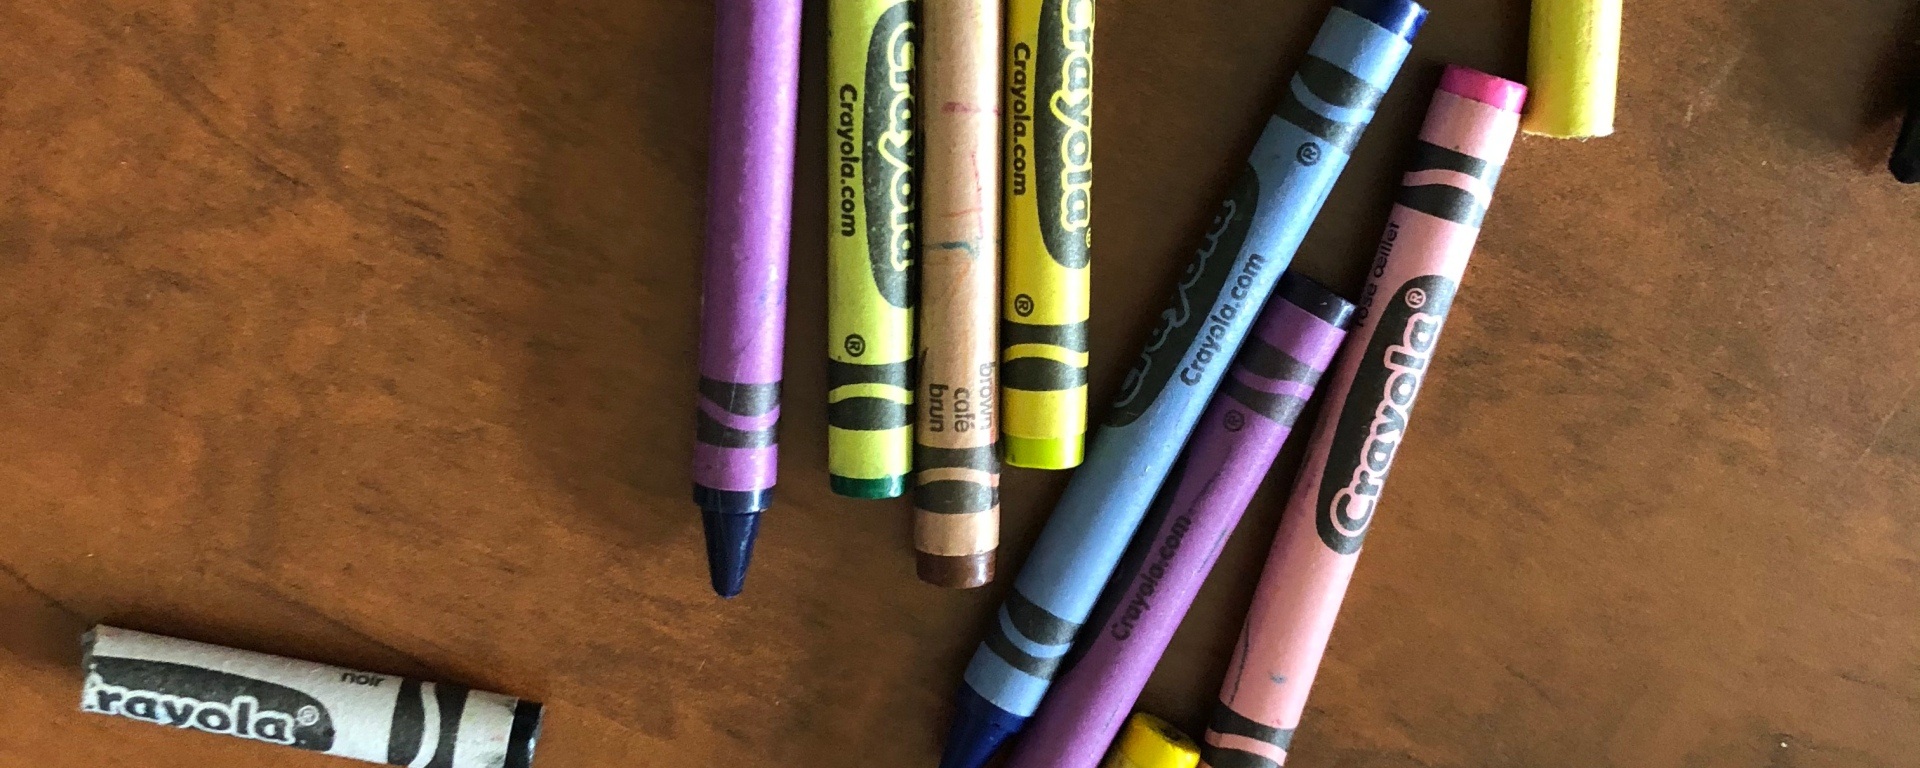 Crayons of various colors are sprawled across a brown table